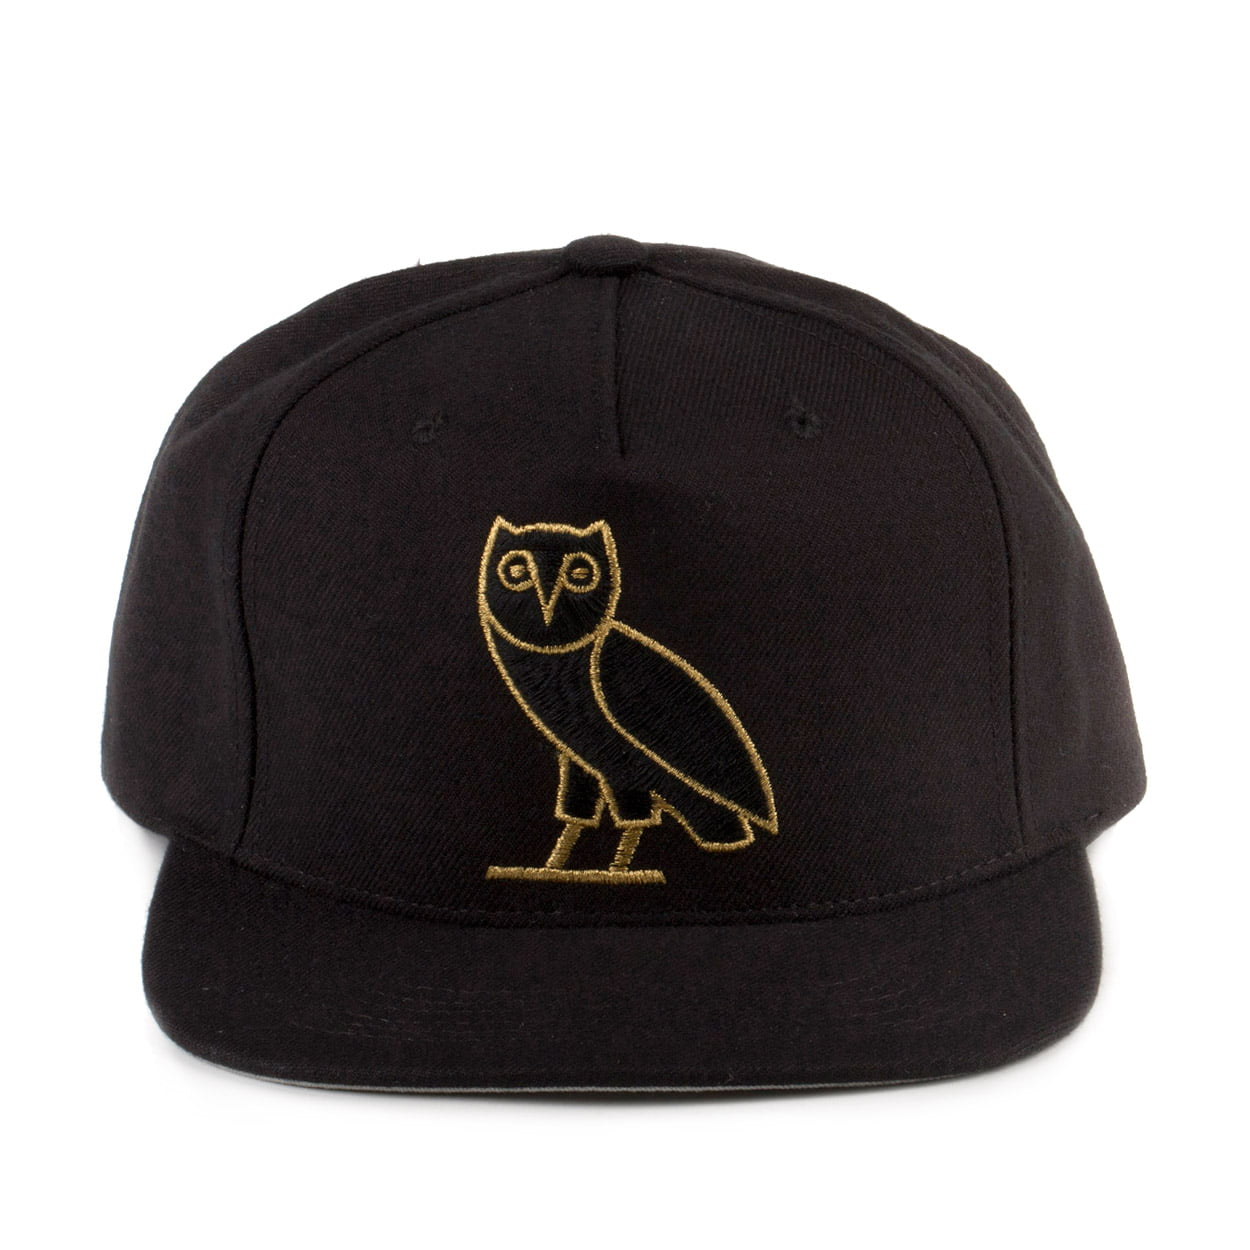 08d1ae5a345 ... coupon code for official ovo owl logo snapback hat black black gold  e4382 53bce